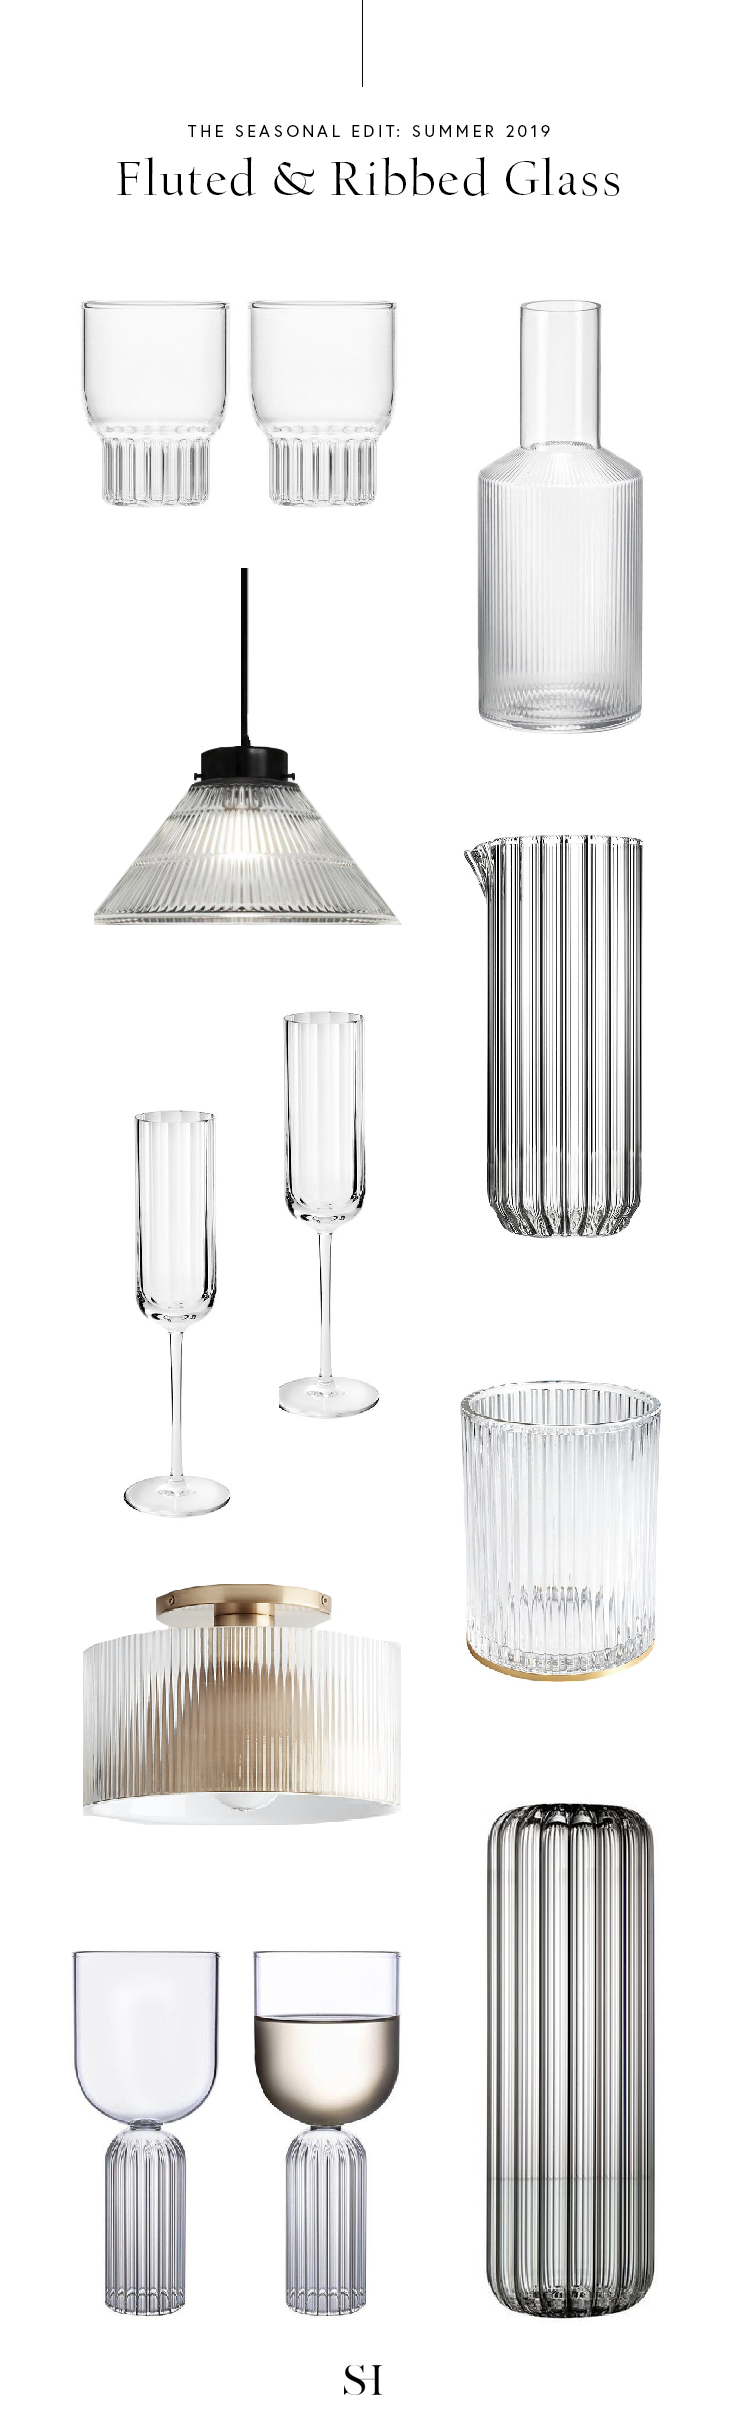 Summer 2019 Seasonal Edit - Current Trend is Fluted and Ribbed Glass.png